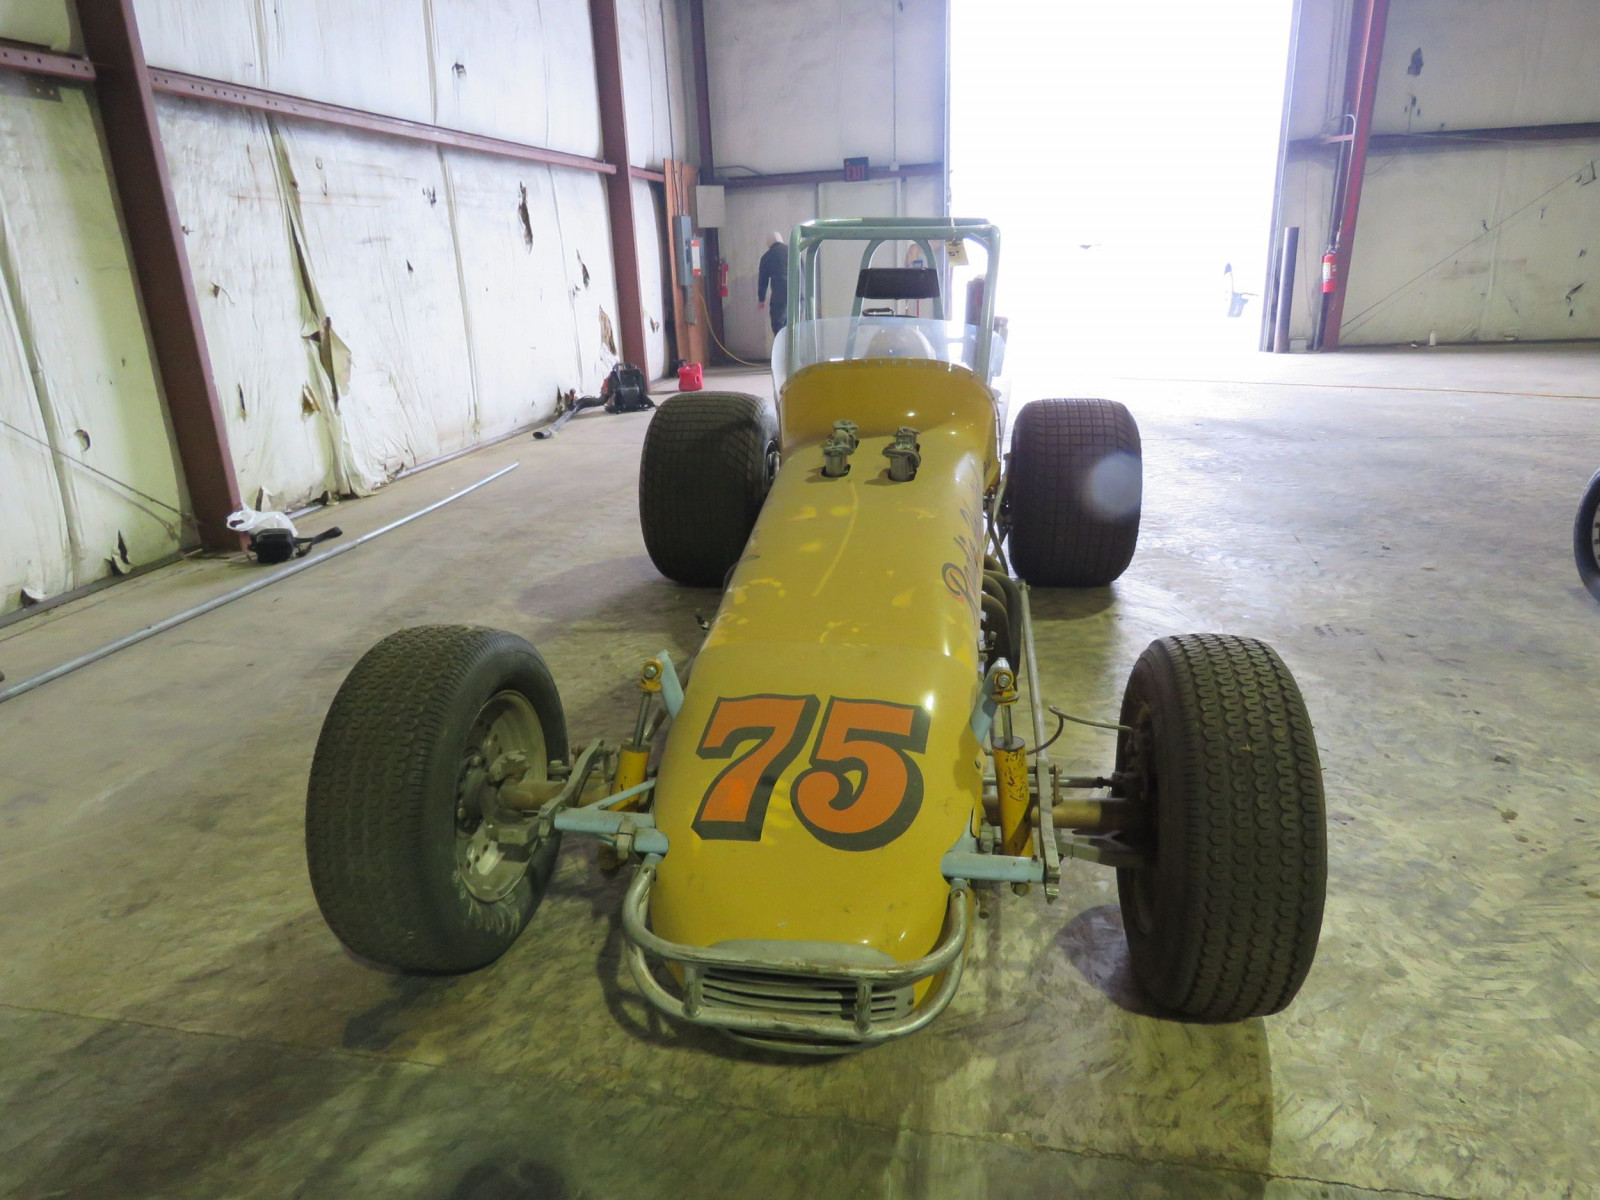 1972 fuel Injected Sprint Car - Image 2